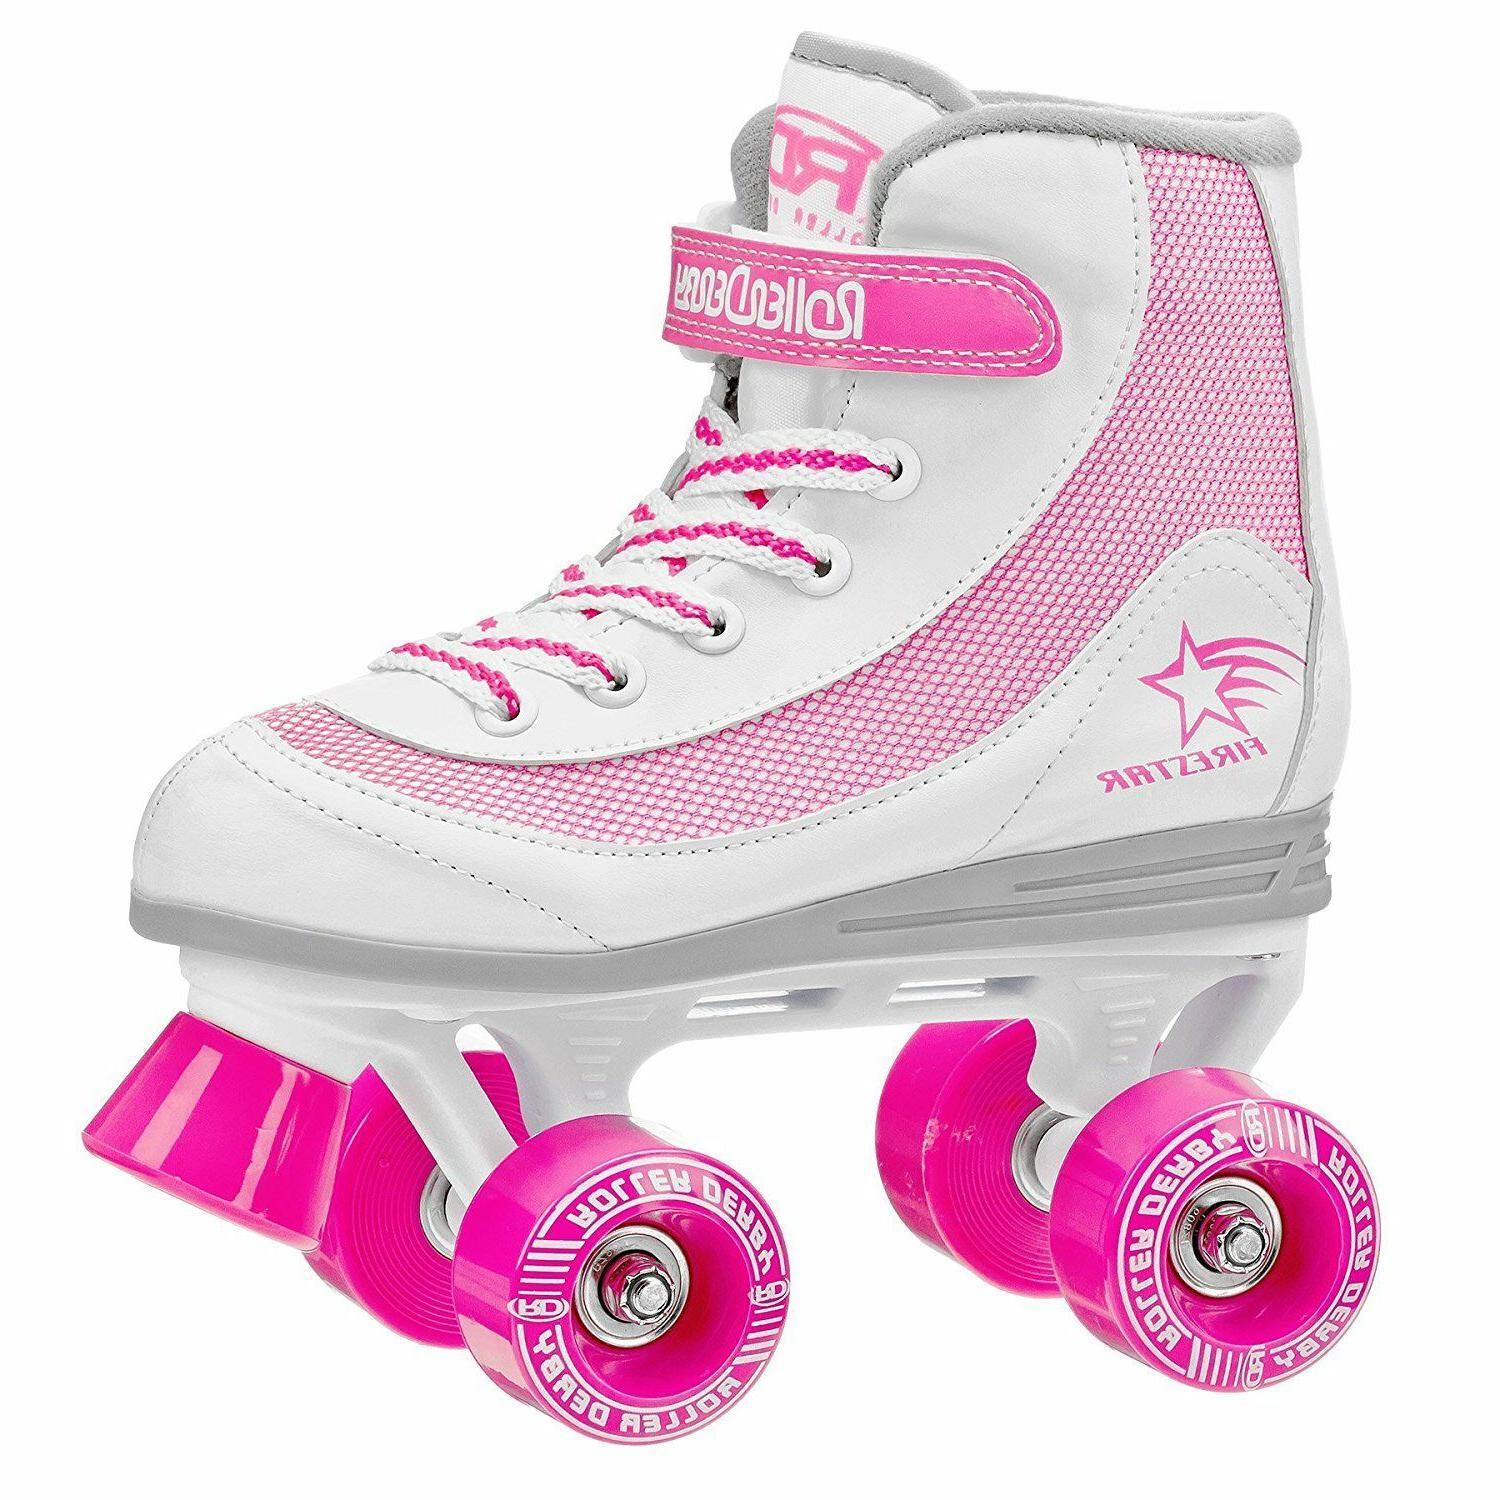 Roller Skates Youth Girls Skates Size 1 Outdoor